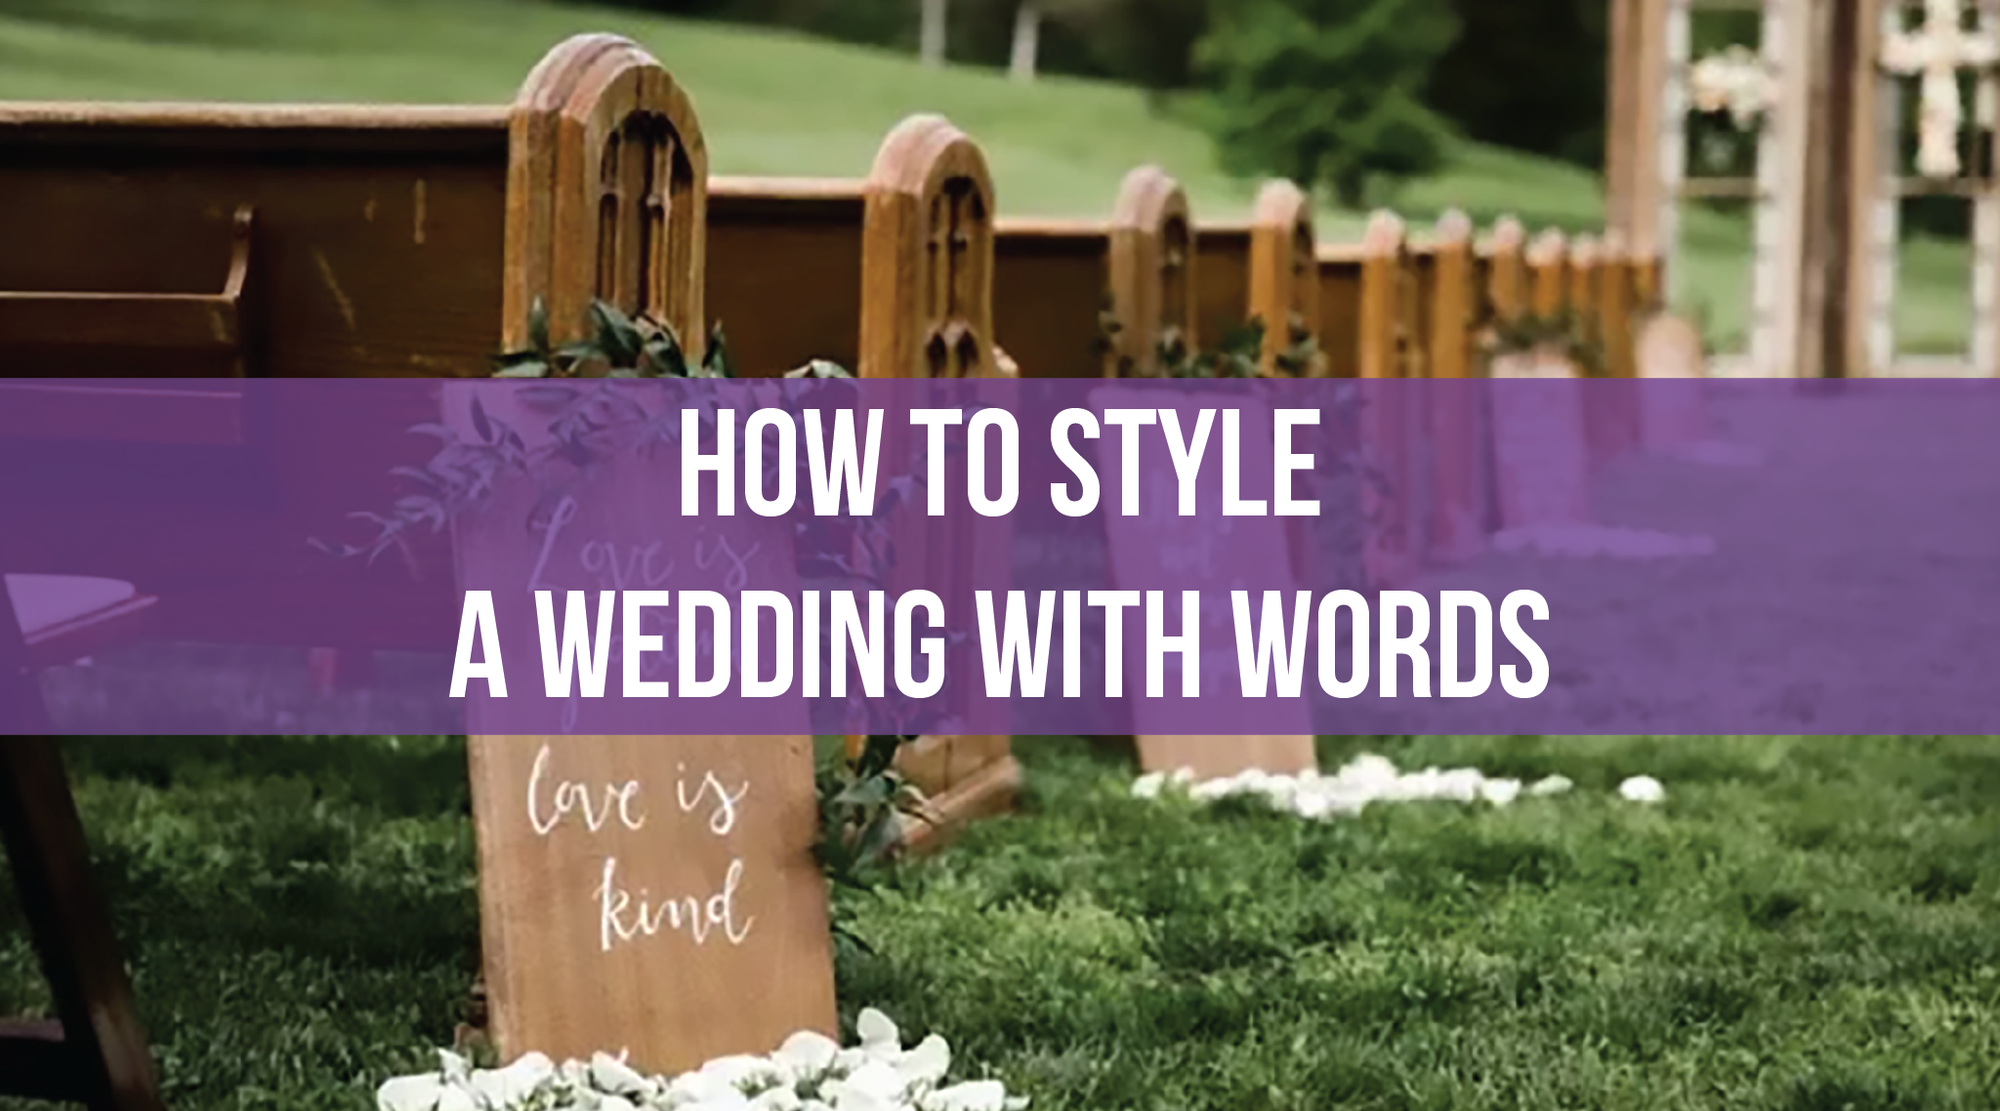 How to Style a Wedding with Words